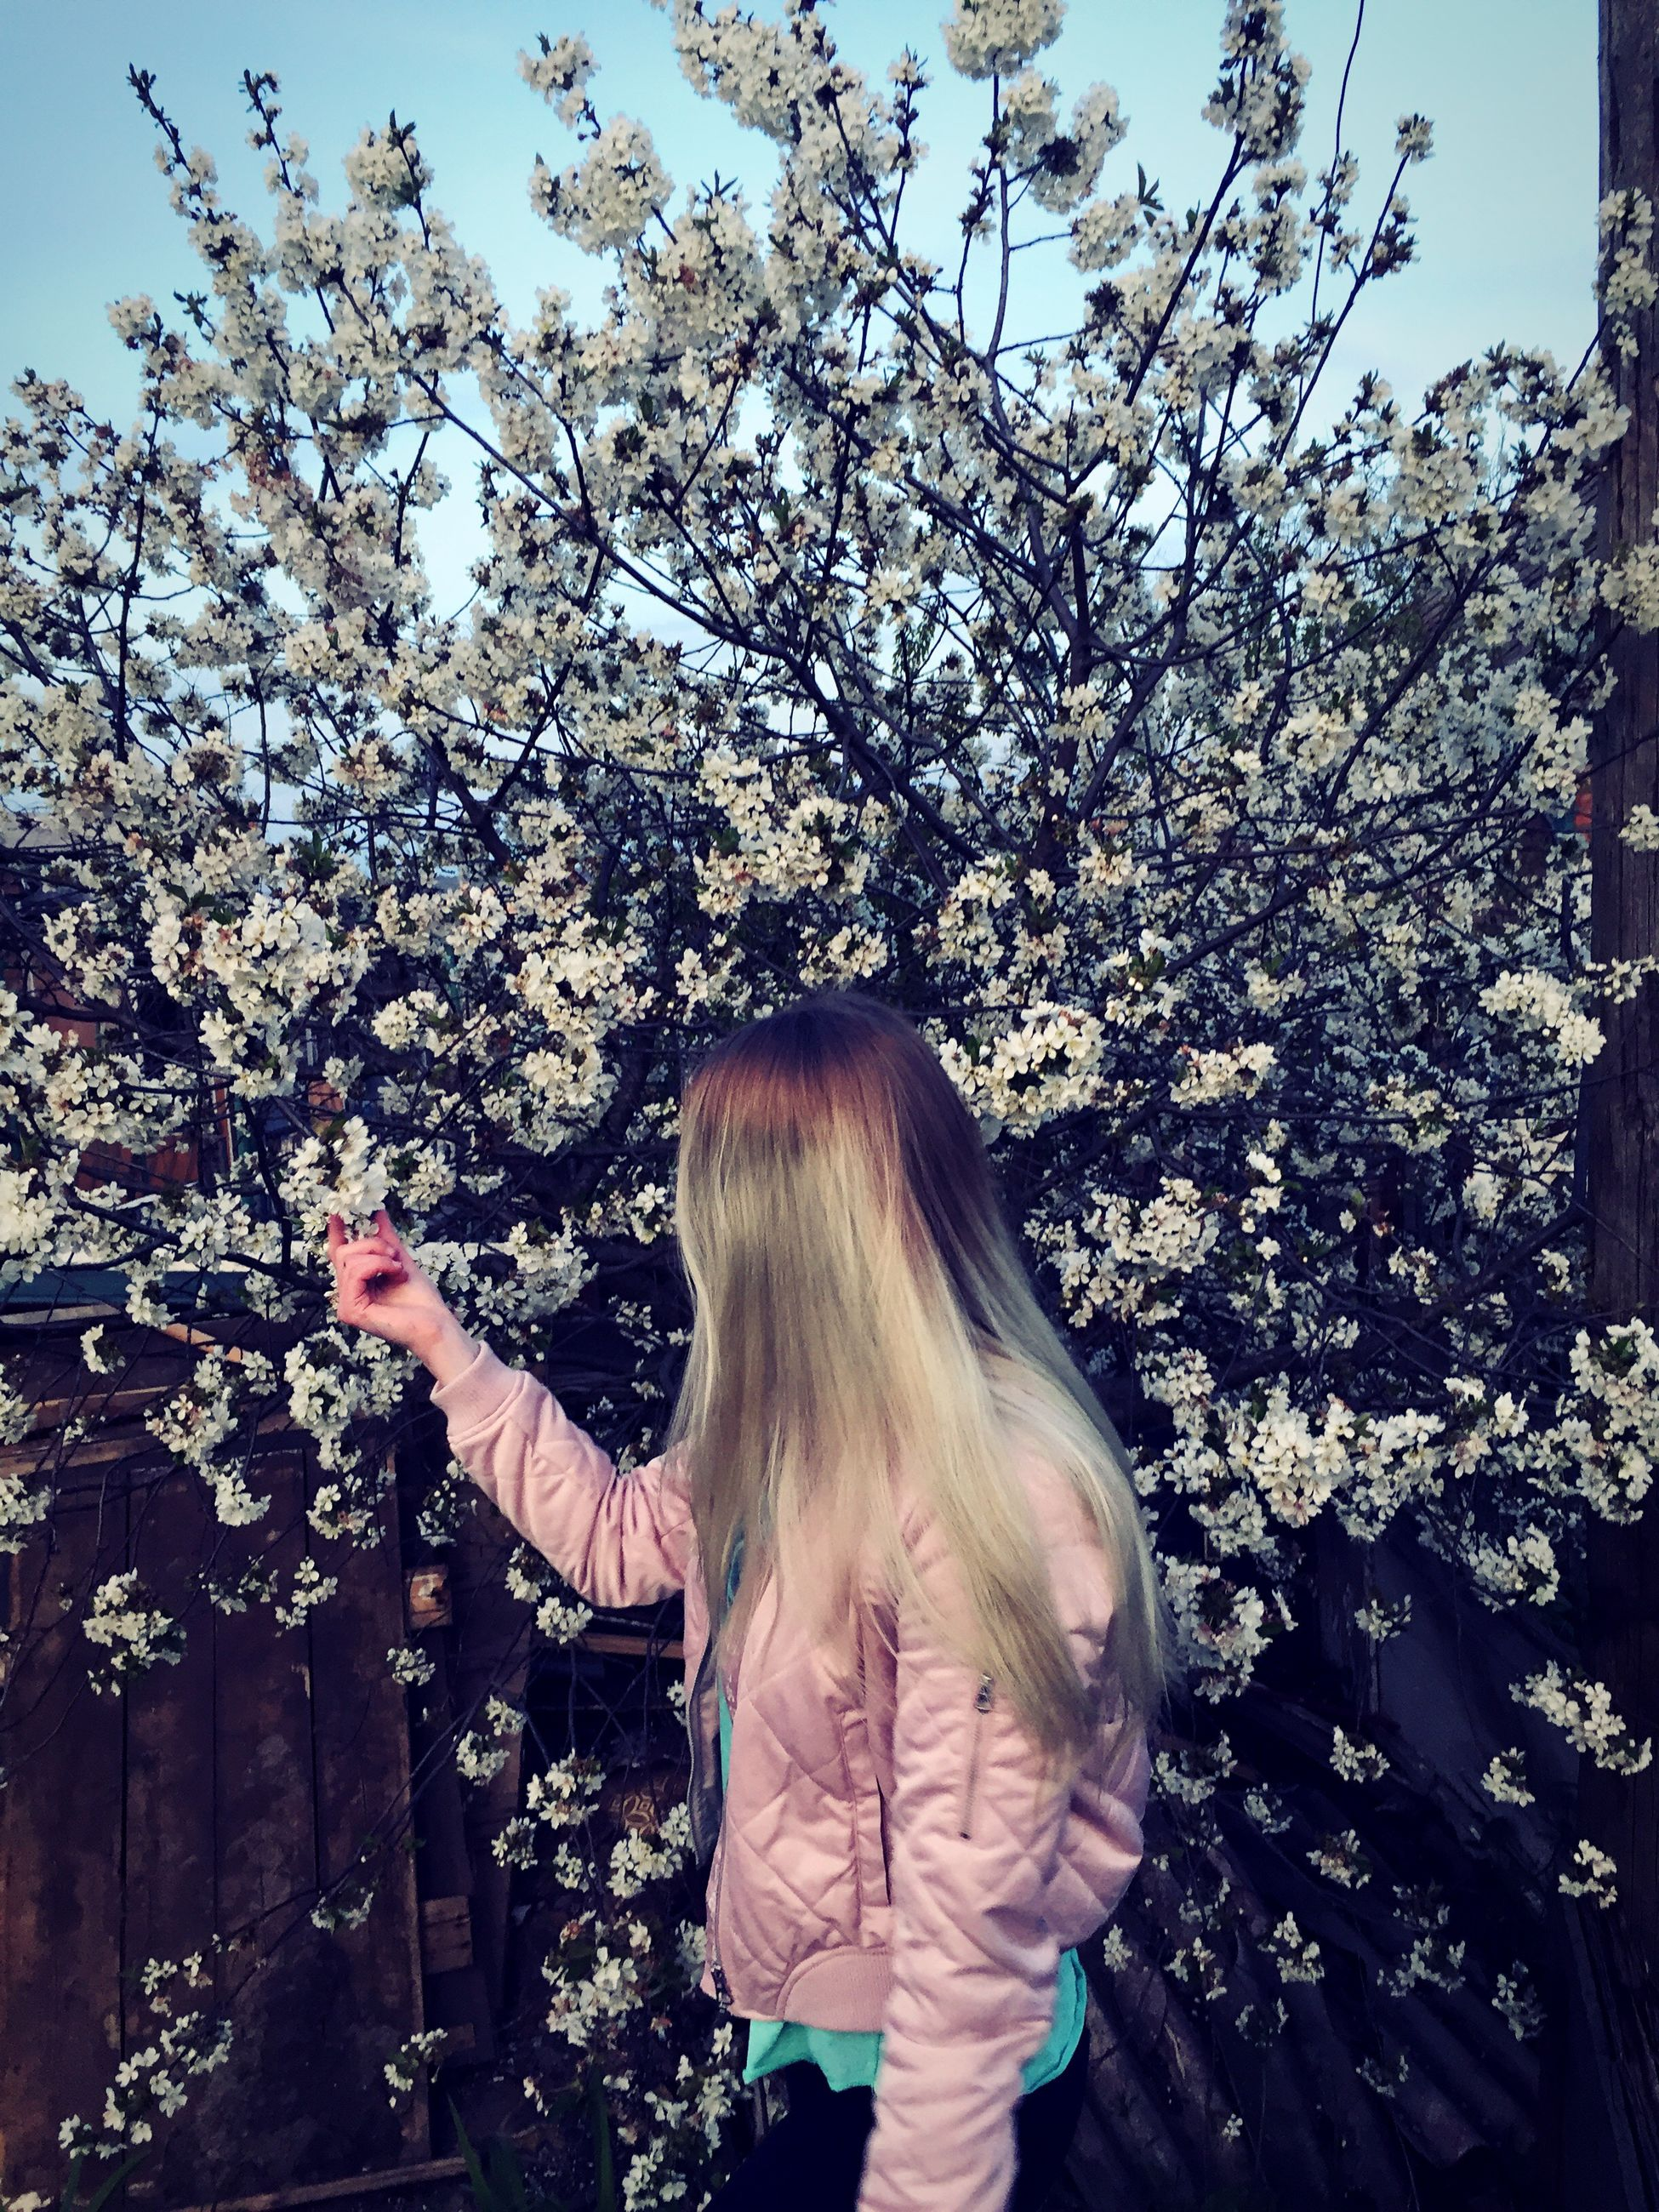 real people, one person, tree, rear view, long hair, flower, leisure activity, standing, blossom, outdoors, day, blond hair, women, nature, branch, young adult, people